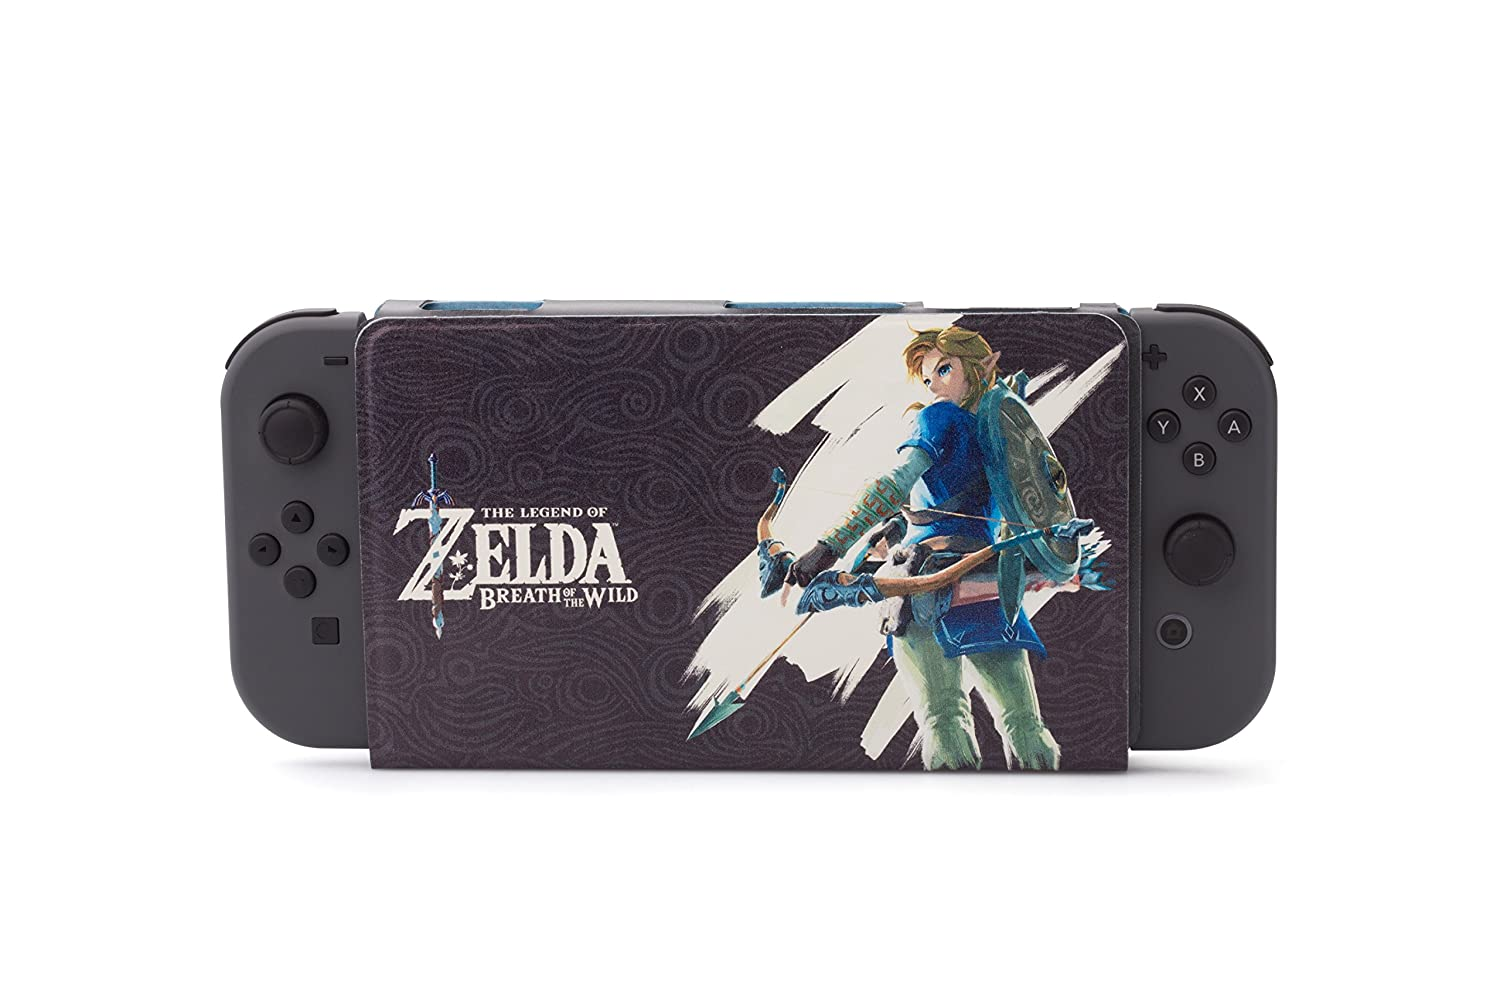 Case Hybrid Cover The Legend of Zelda Breath of the Wild (Envio Internacional) - Nintendo Switch